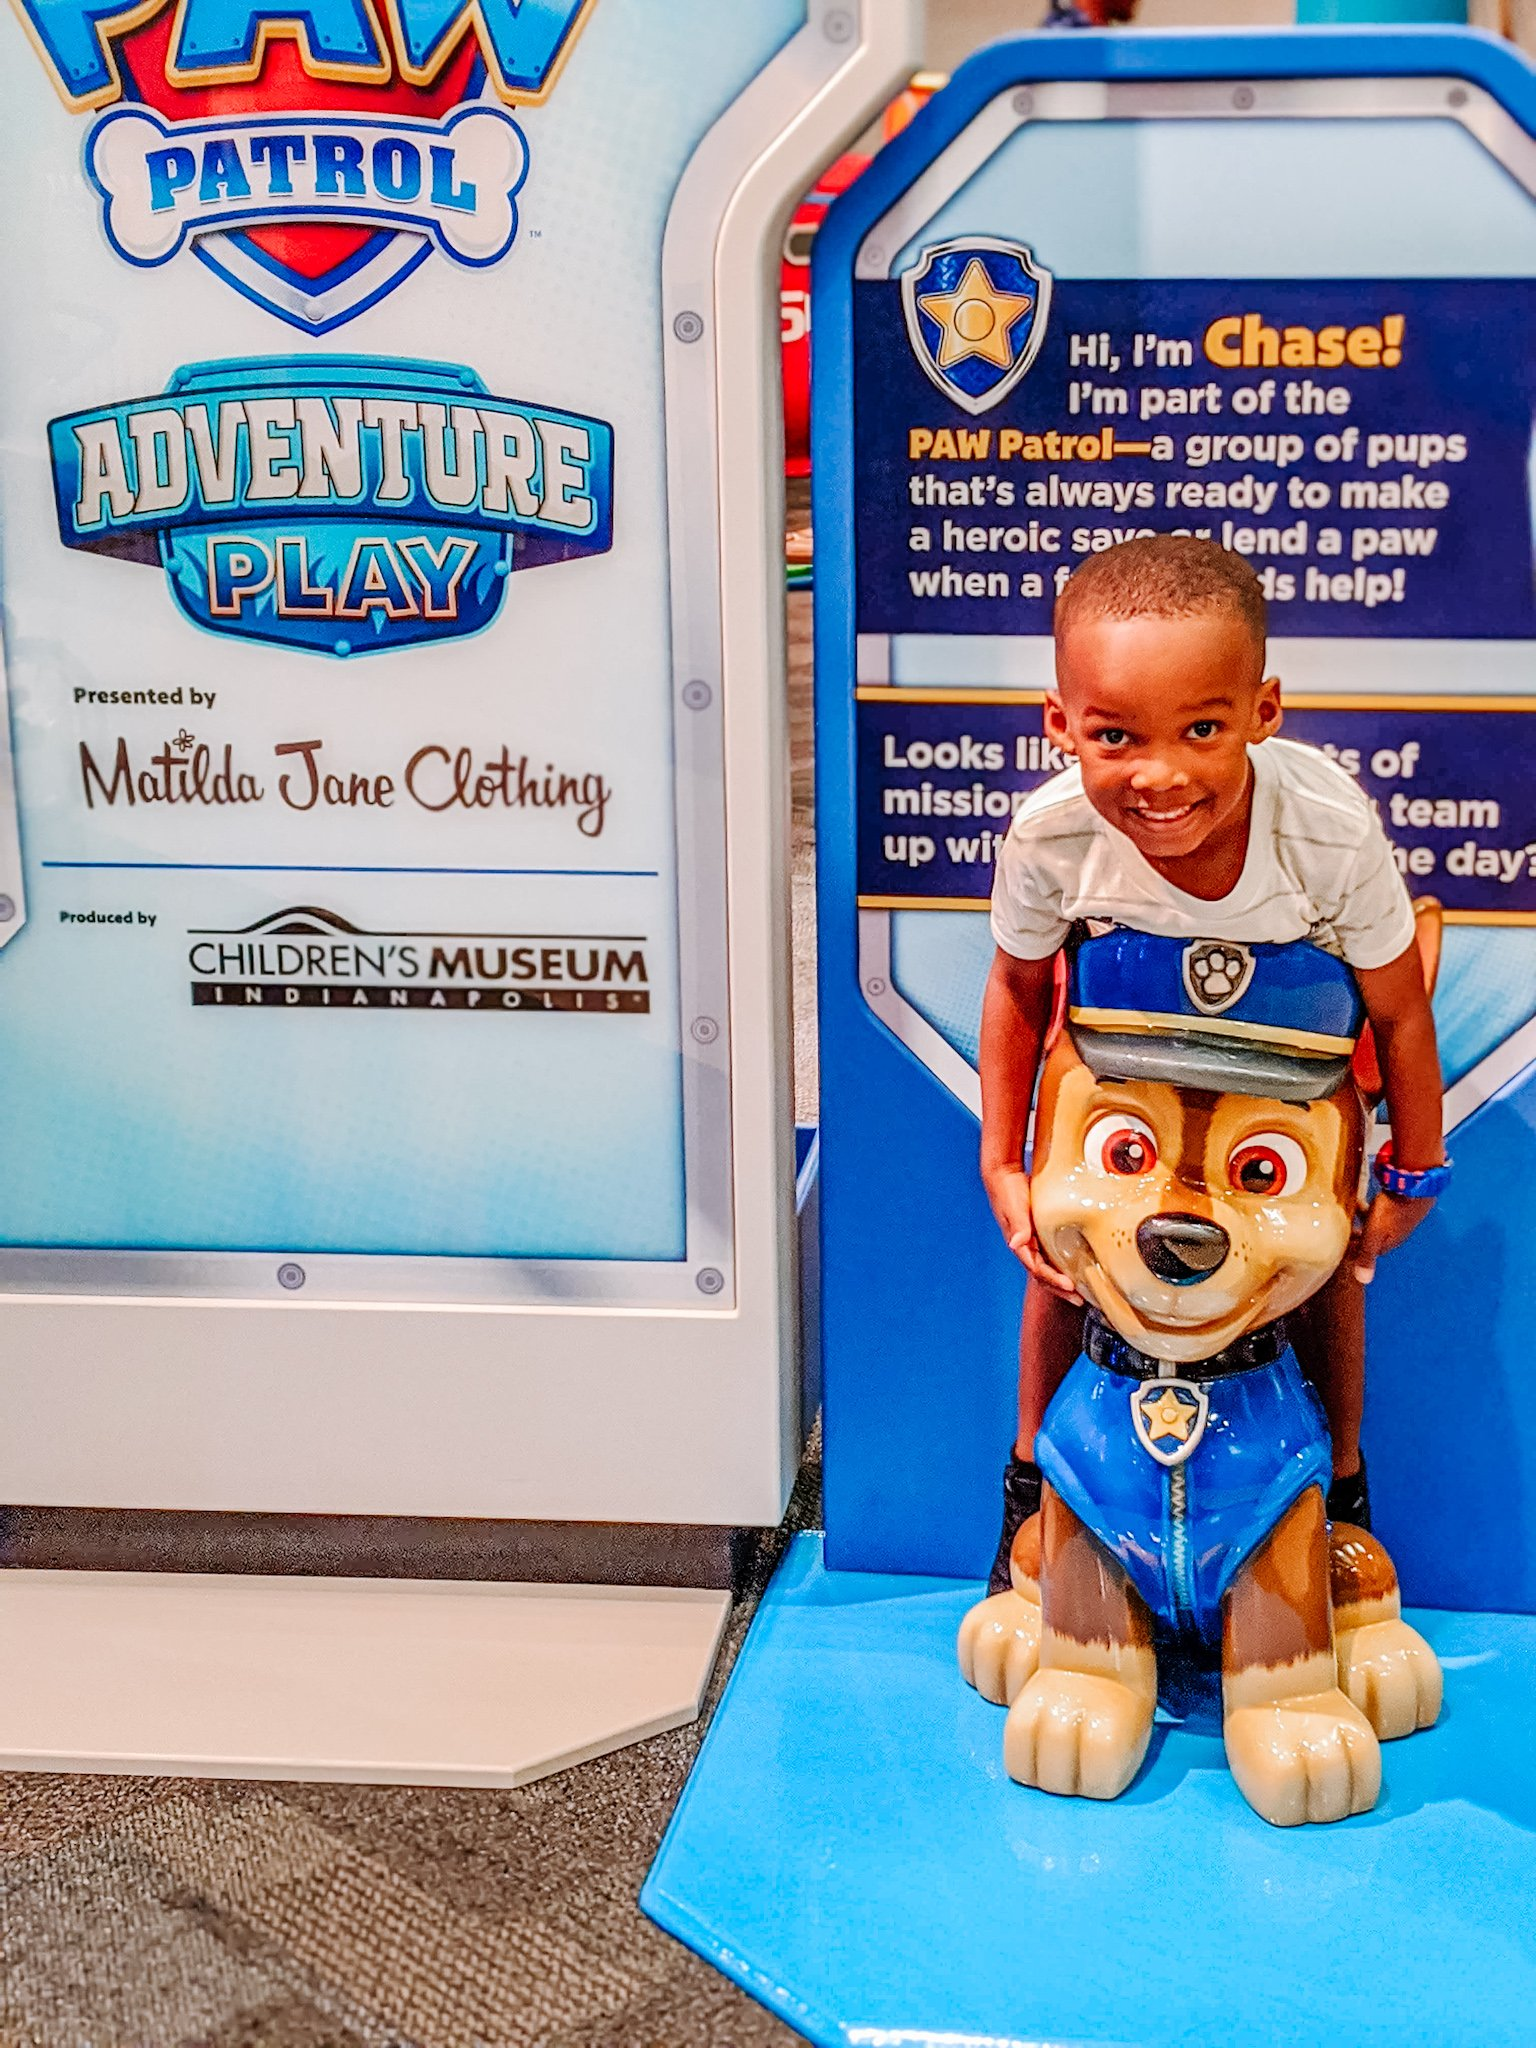 Preschool Black boy with Chase of the Paw Patrol